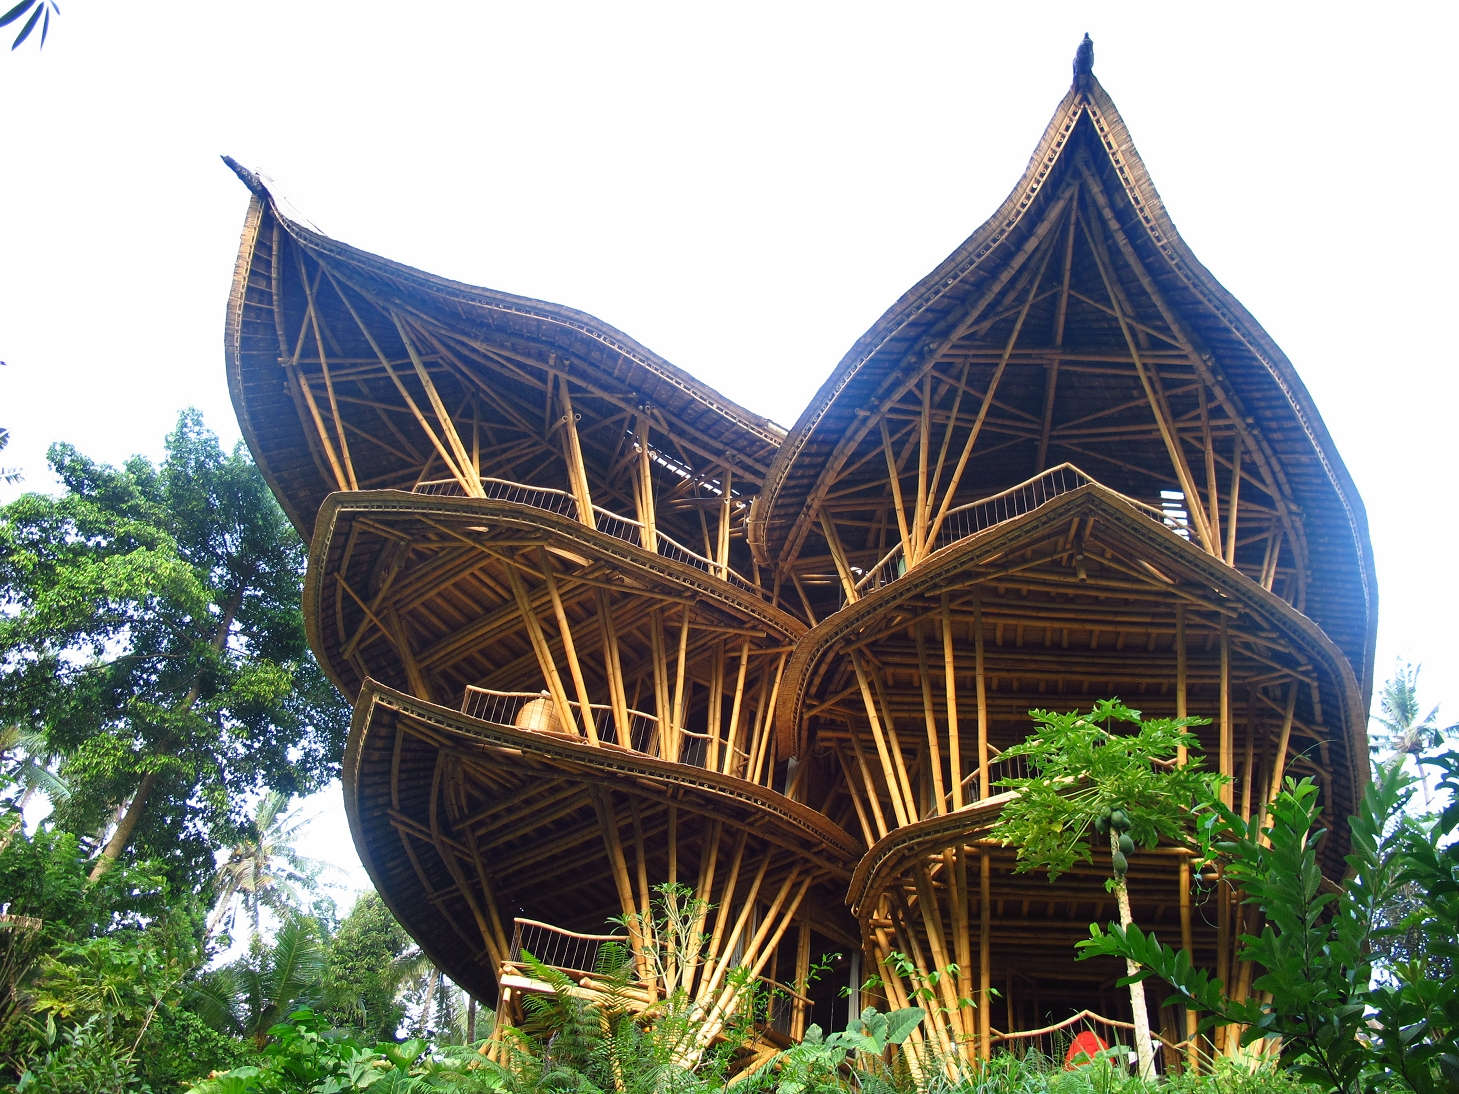 visit bali's famous bamboo mansions and design workshop - voyagin